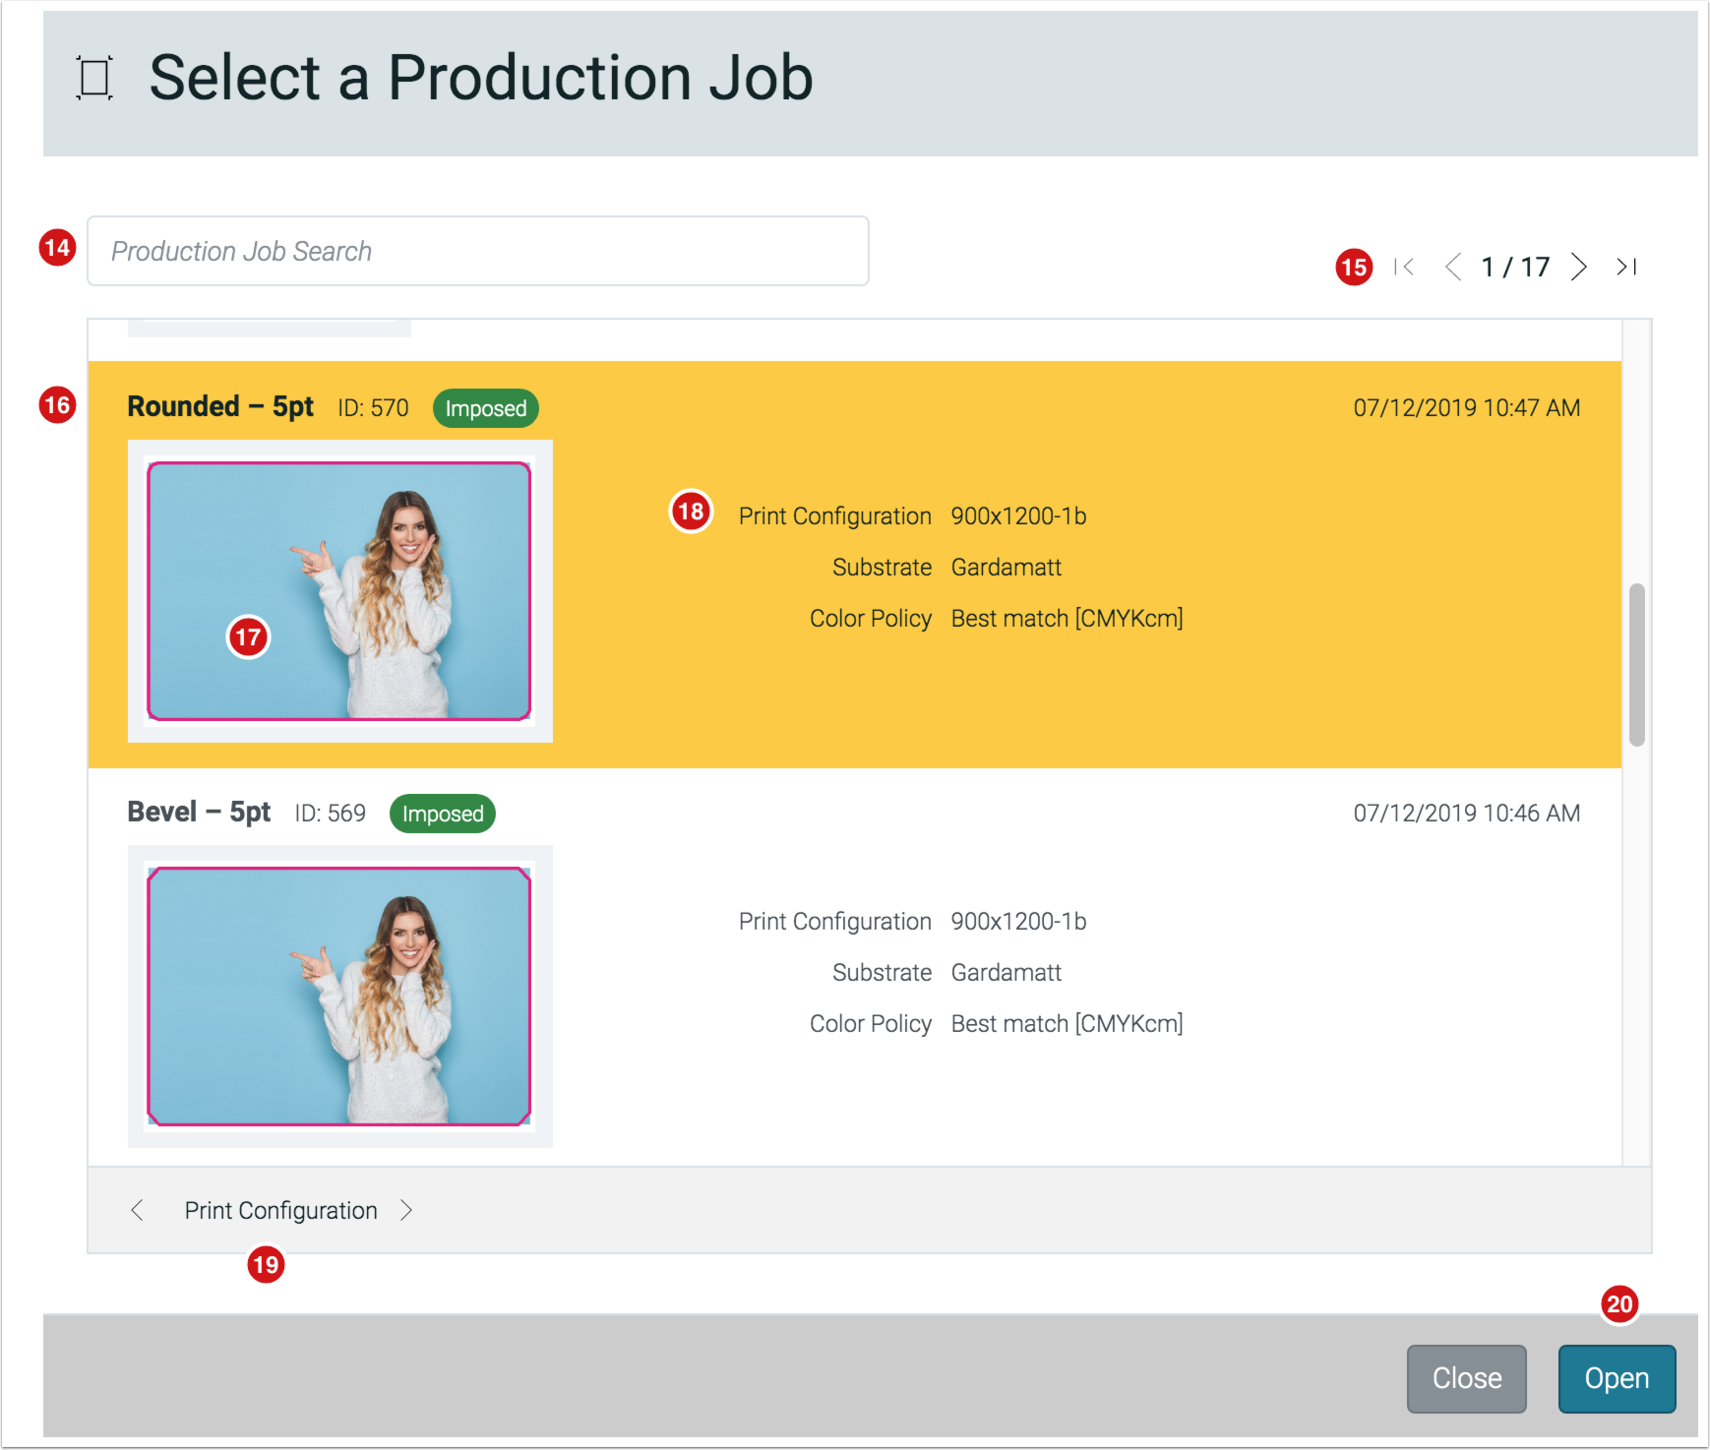 Select a Production Job - 1.7.5